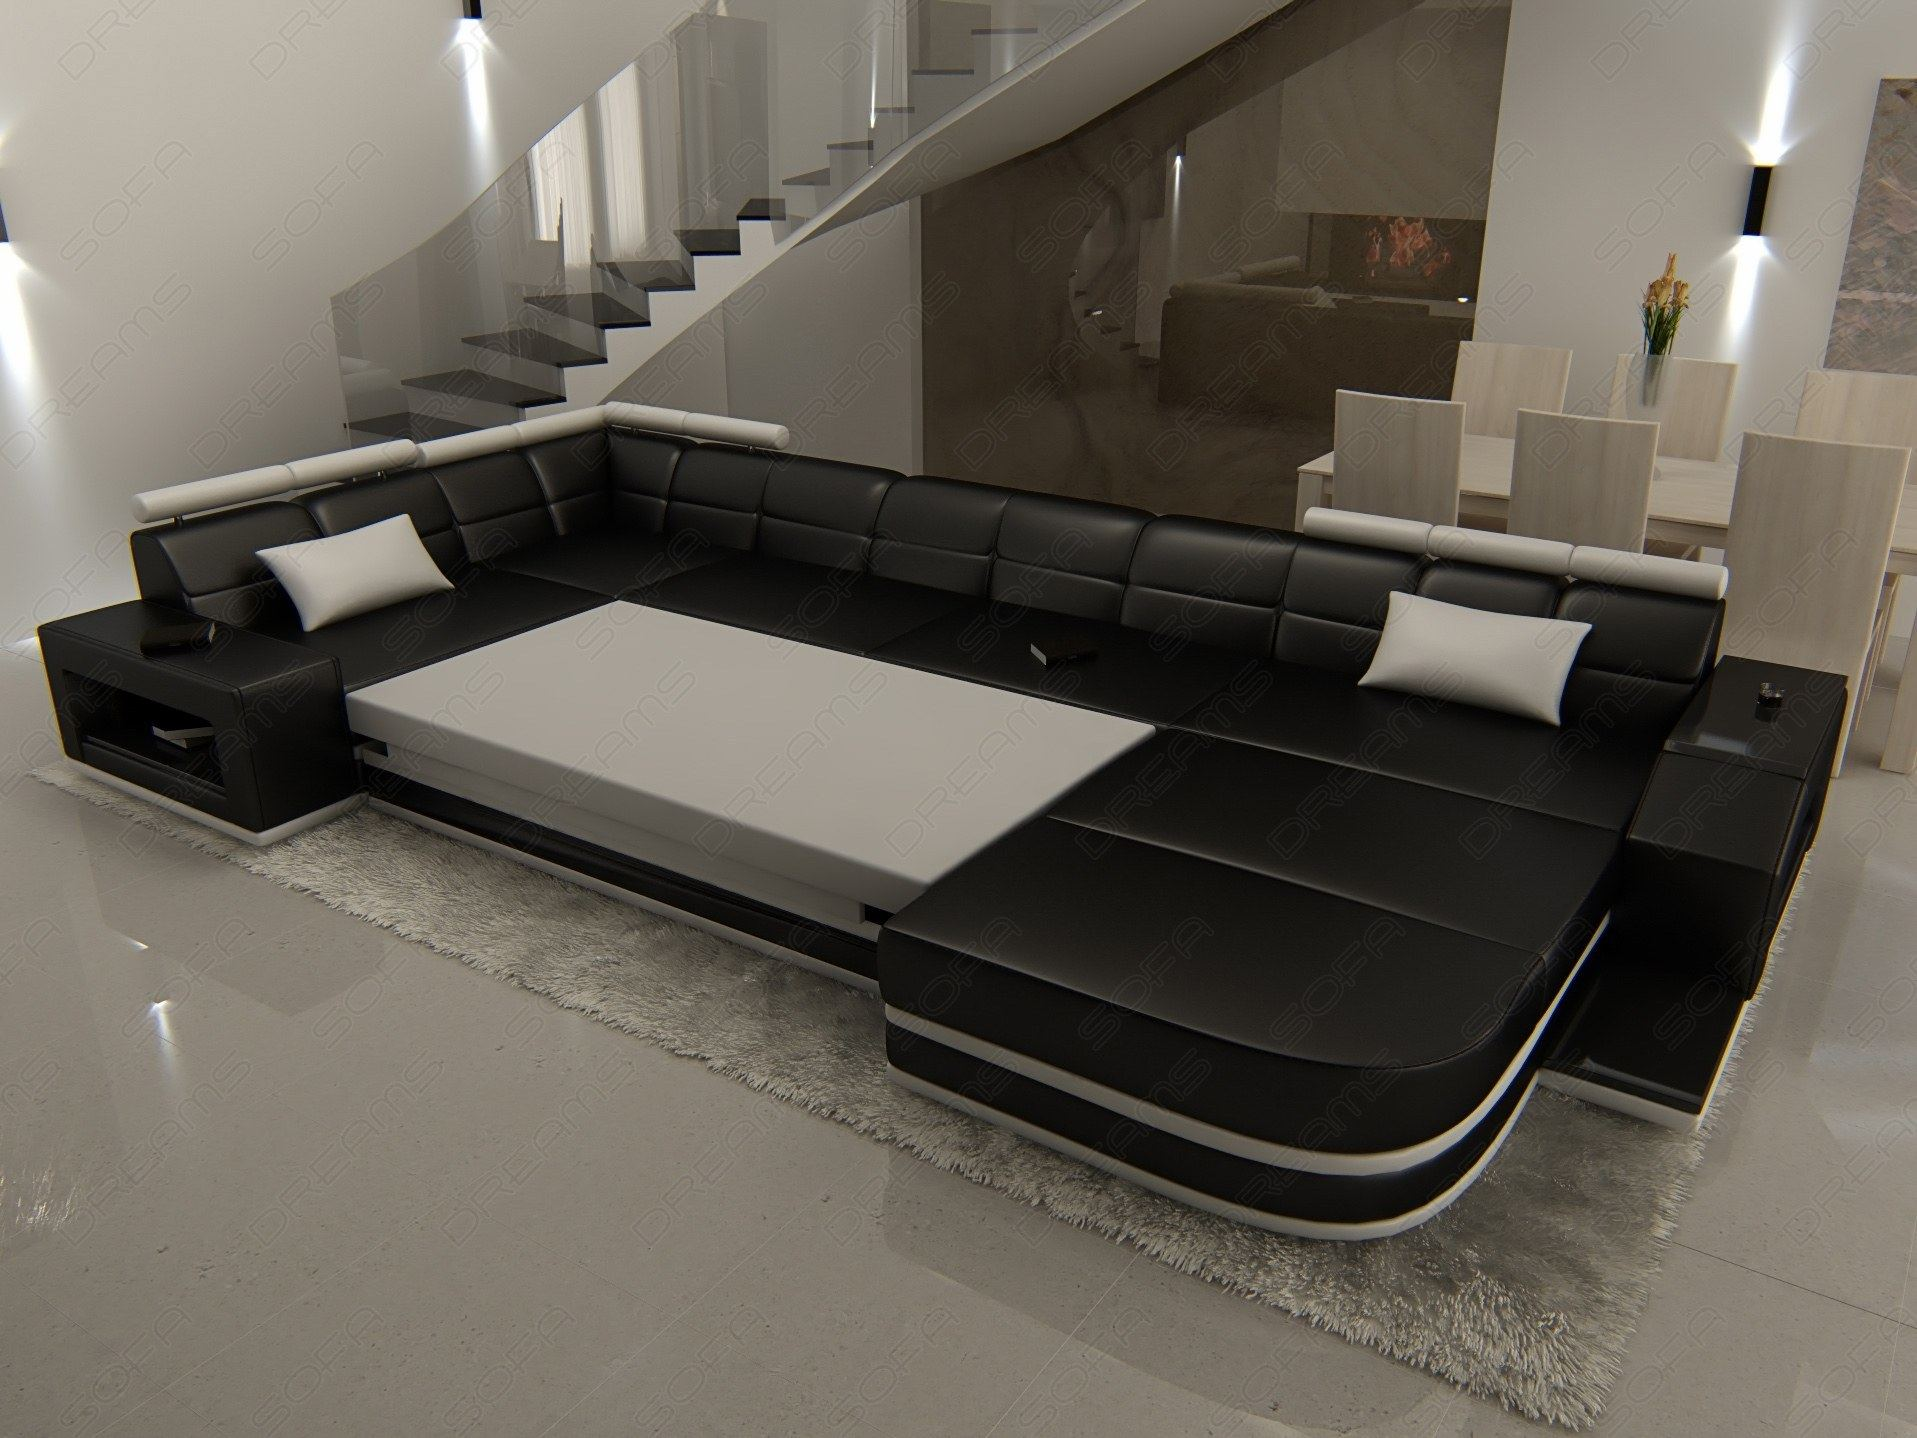 wohnlandschaft ledersofa venedig mit beleuchtung design schwarz ebay. Black Bedroom Furniture Sets. Home Design Ideas